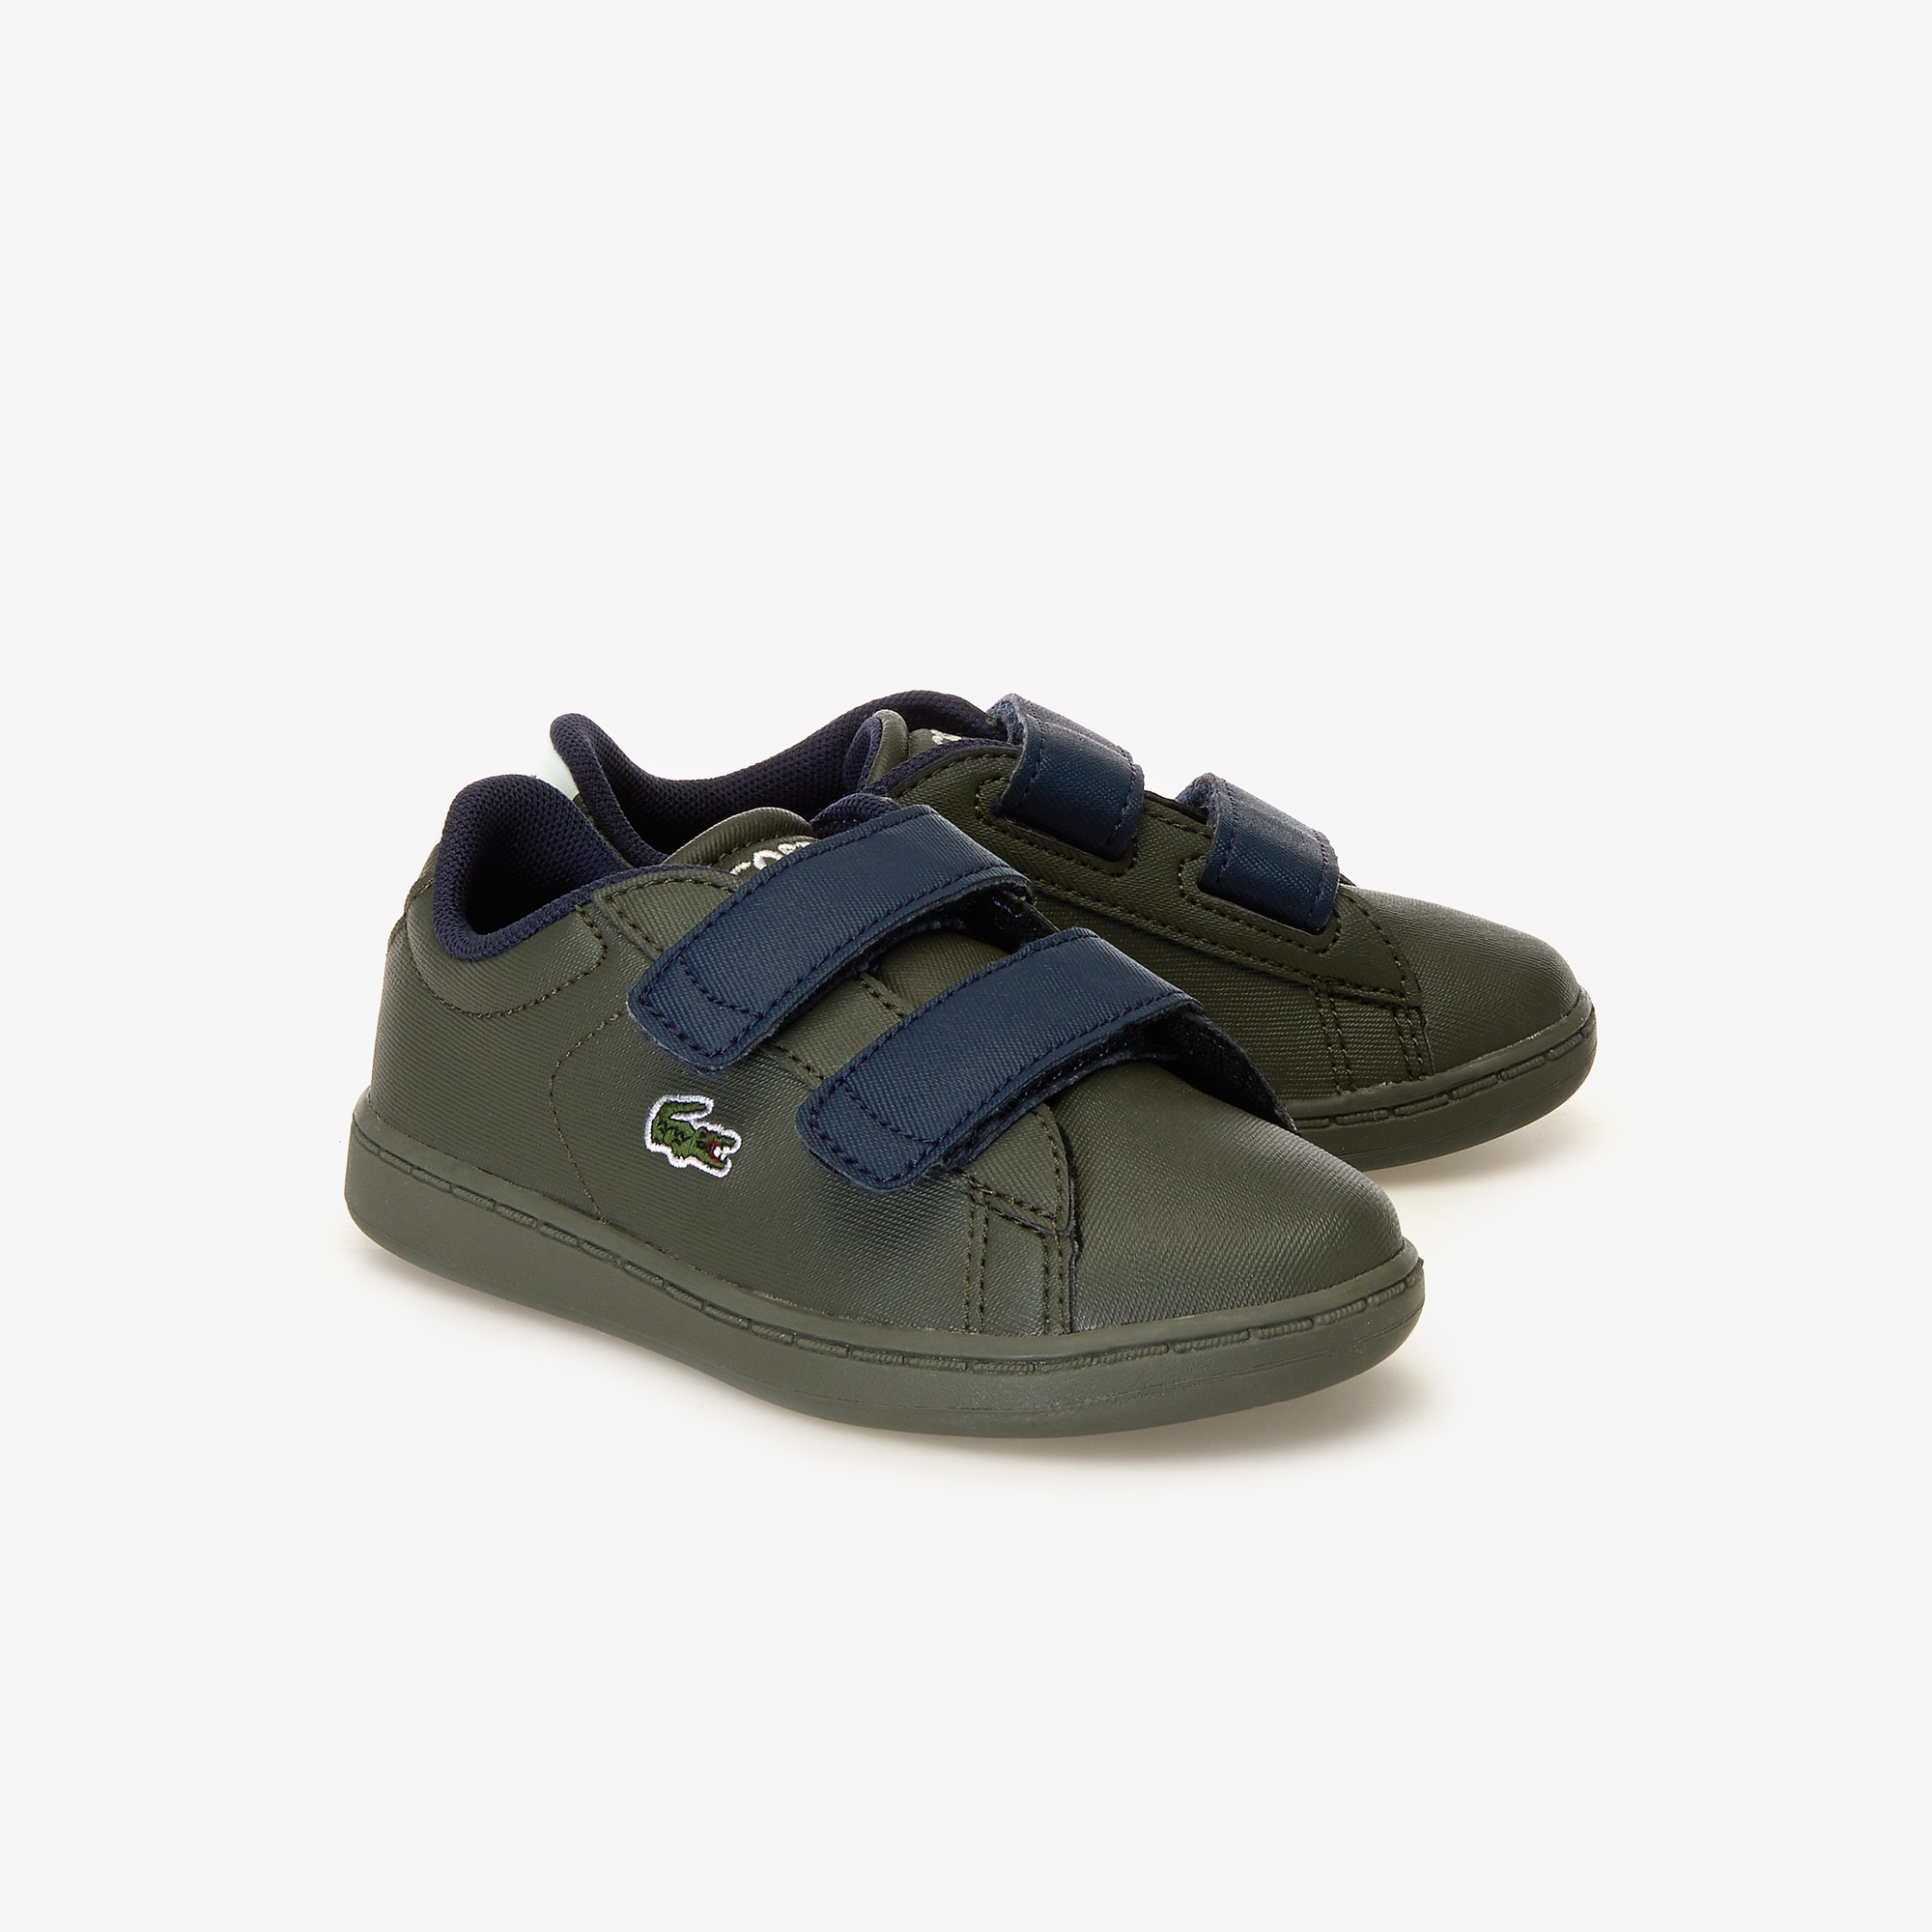 602f47ec27 Infants' Carnaby Evo Strap Synthetic Trainers